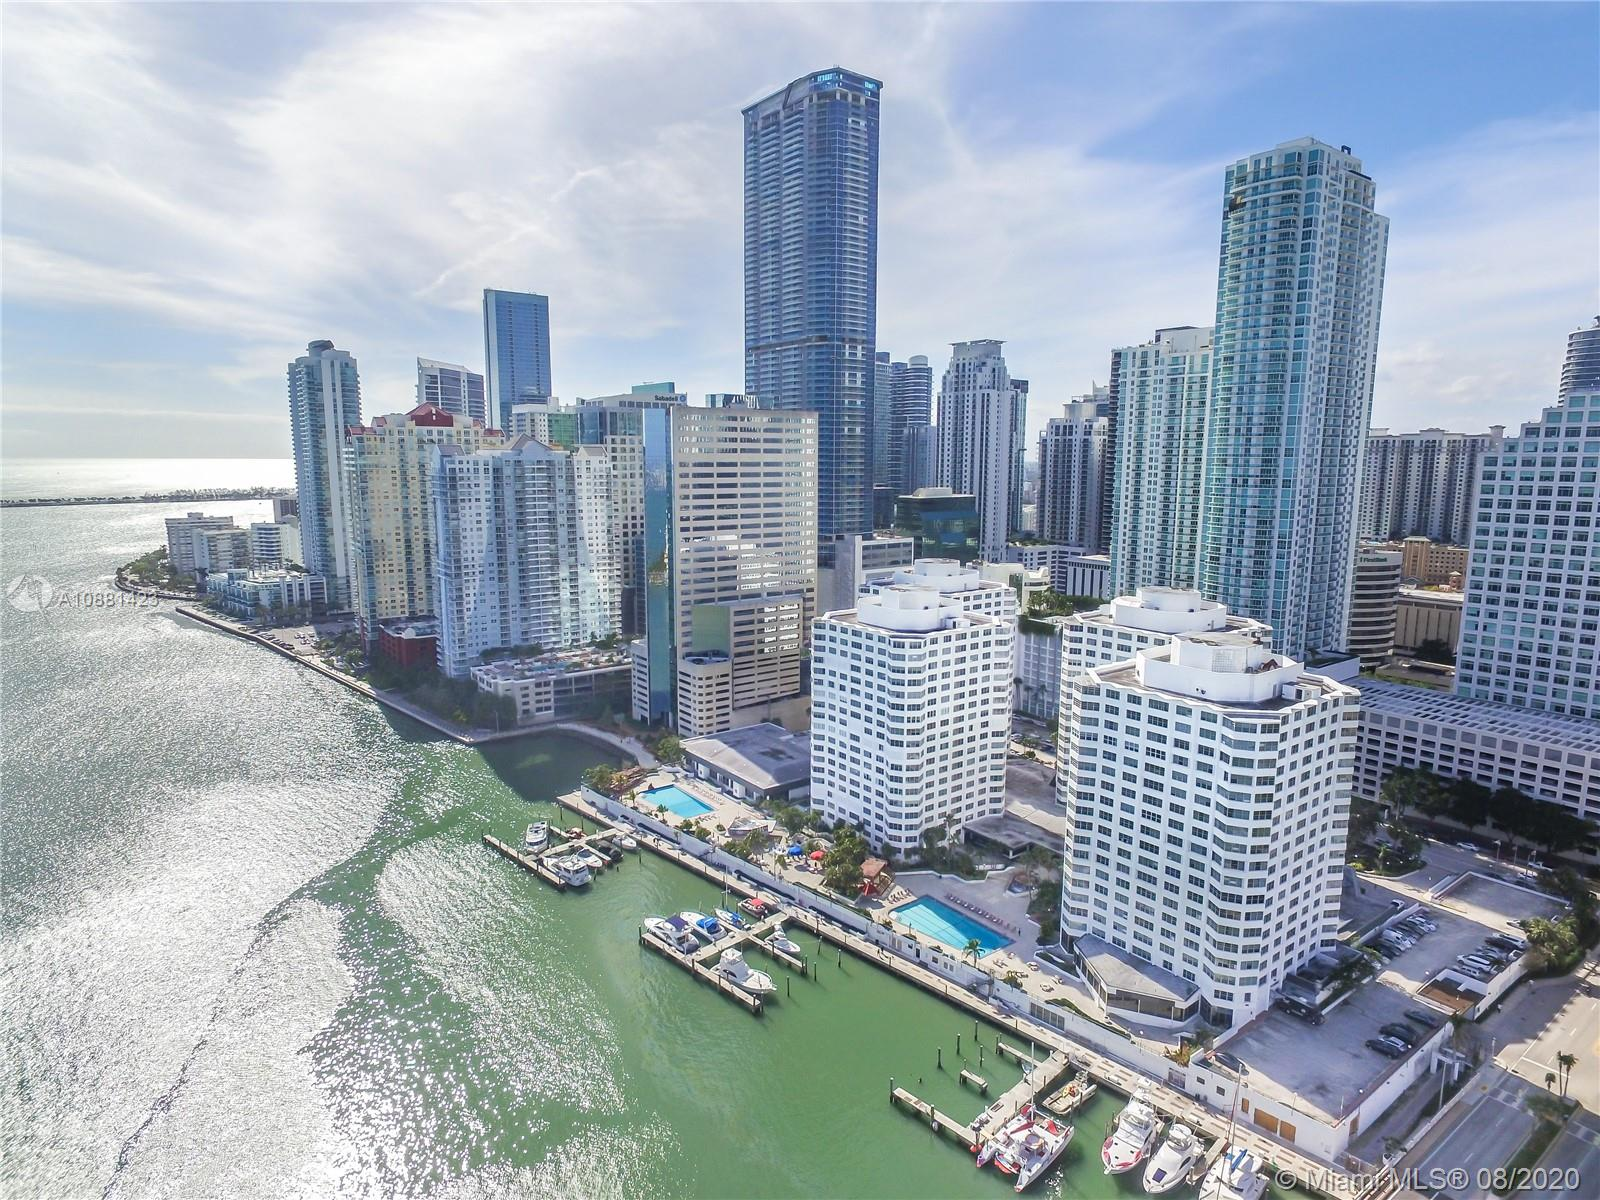 Courts Brickell Key #1164 - 801 Brickell Bay Dr #1164, Miami, FL 33131